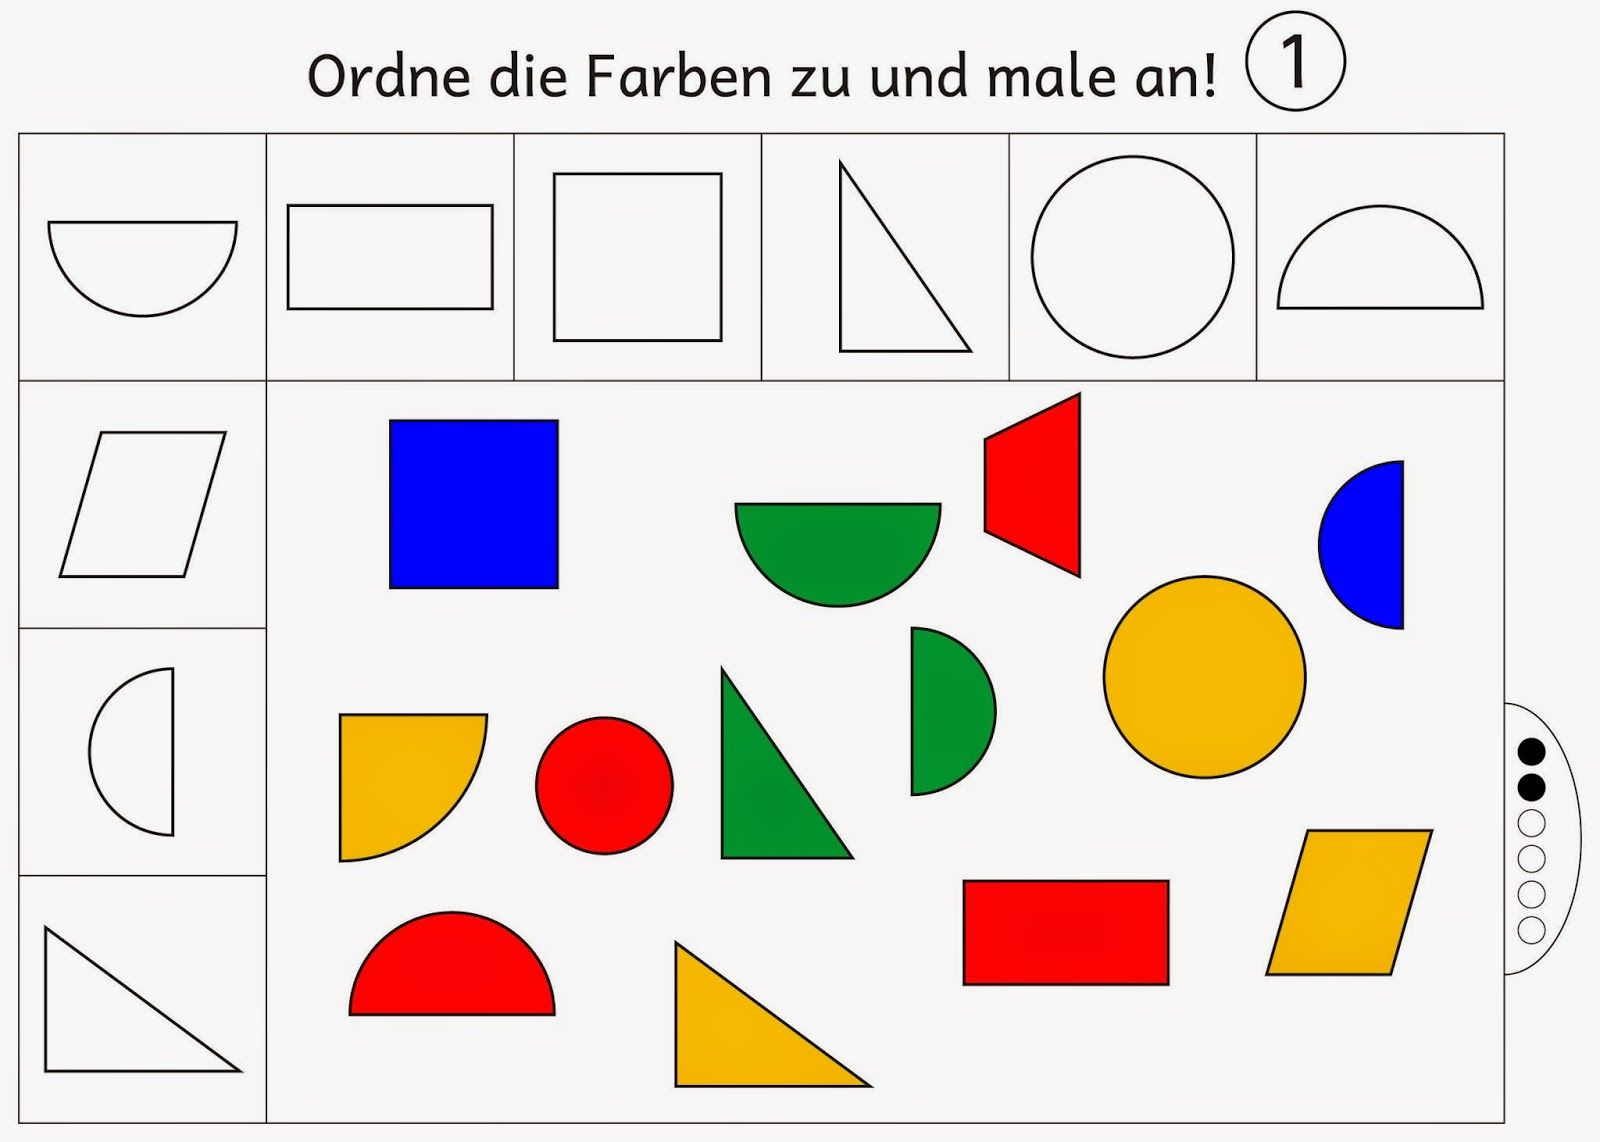 farben zuordnen und anmalen level 2 geometria math for kids kids parenting und math. Black Bedroom Furniture Sets. Home Design Ideas